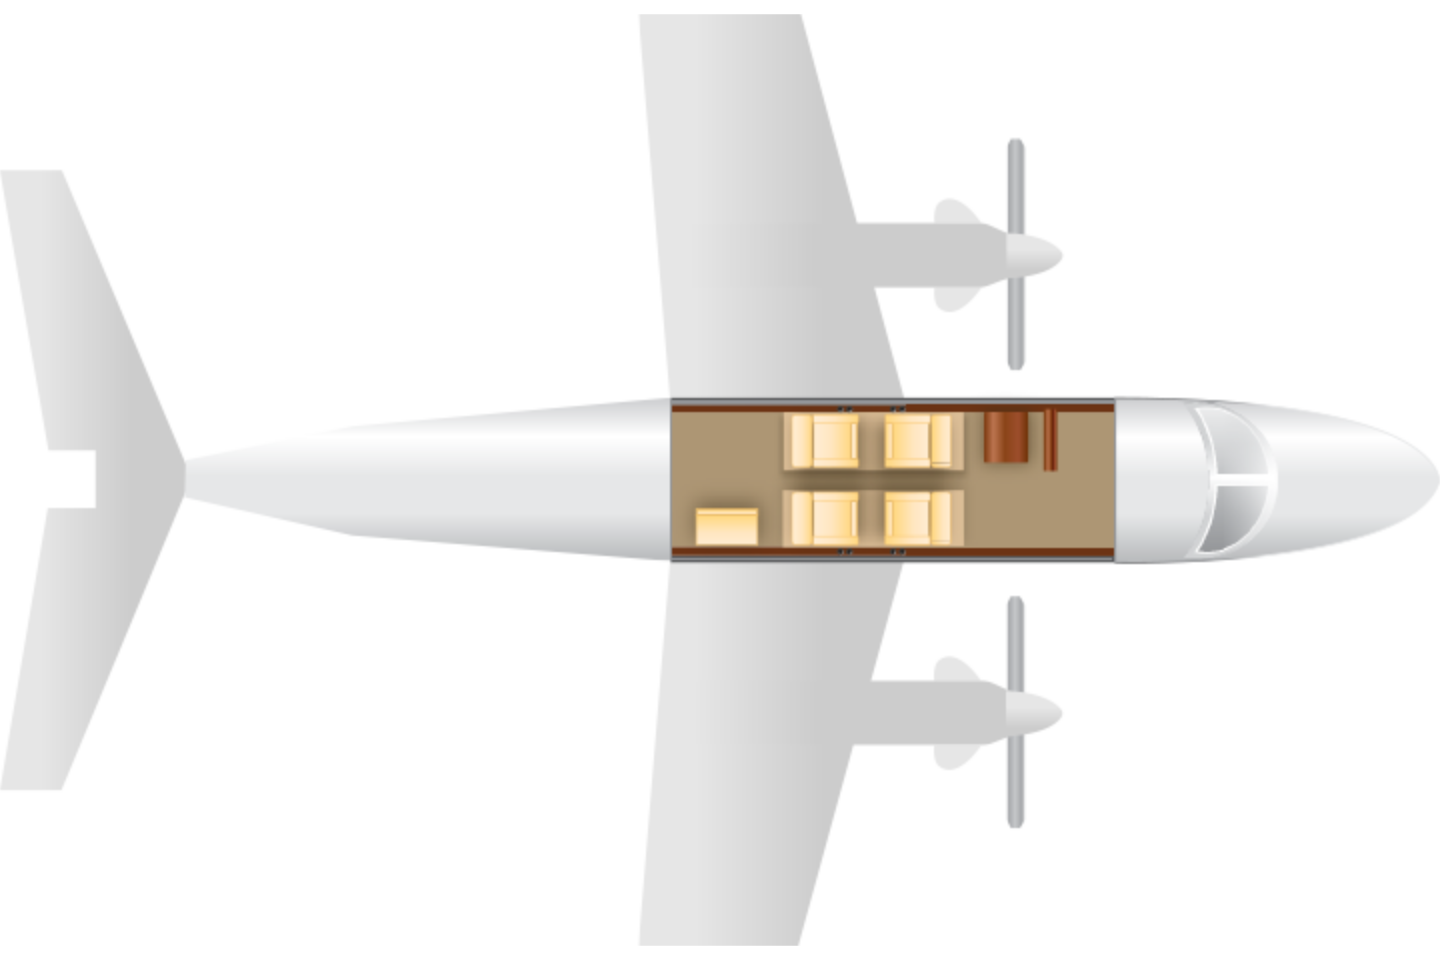 king-air-90-transparent-1413395432.png Floor Plan View